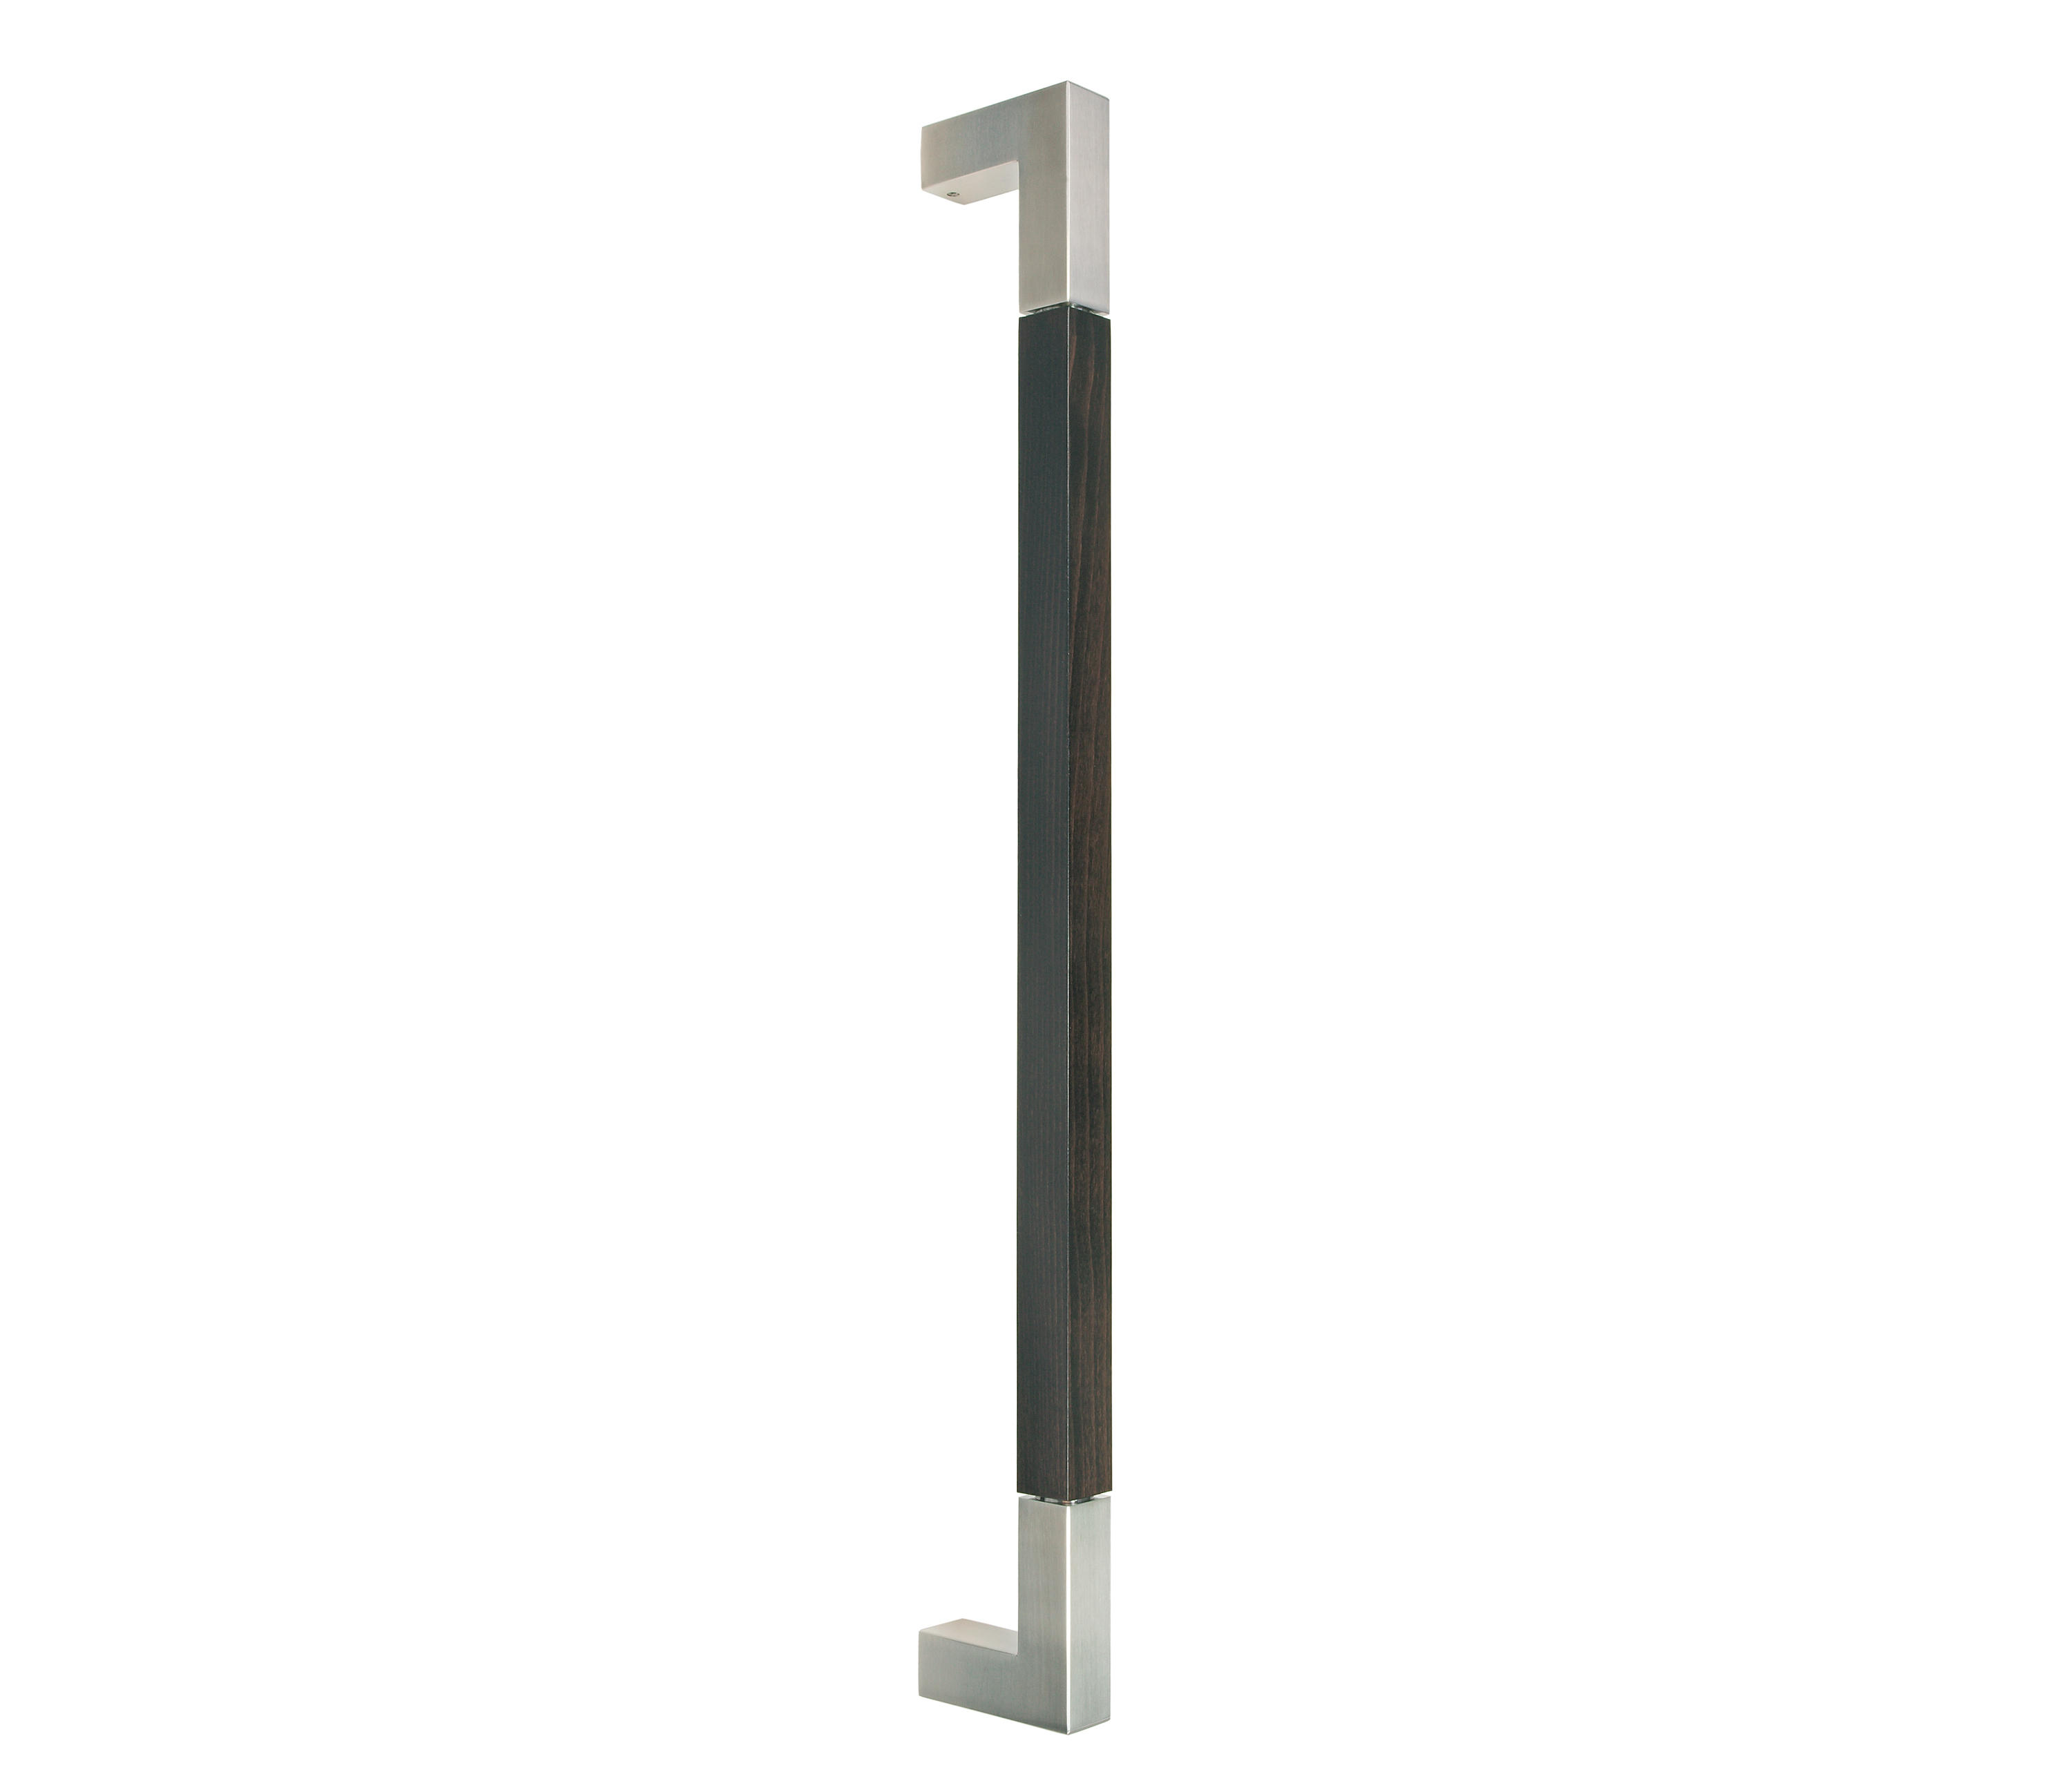 Bar Door Handle Linea Pull Handles From Mwe